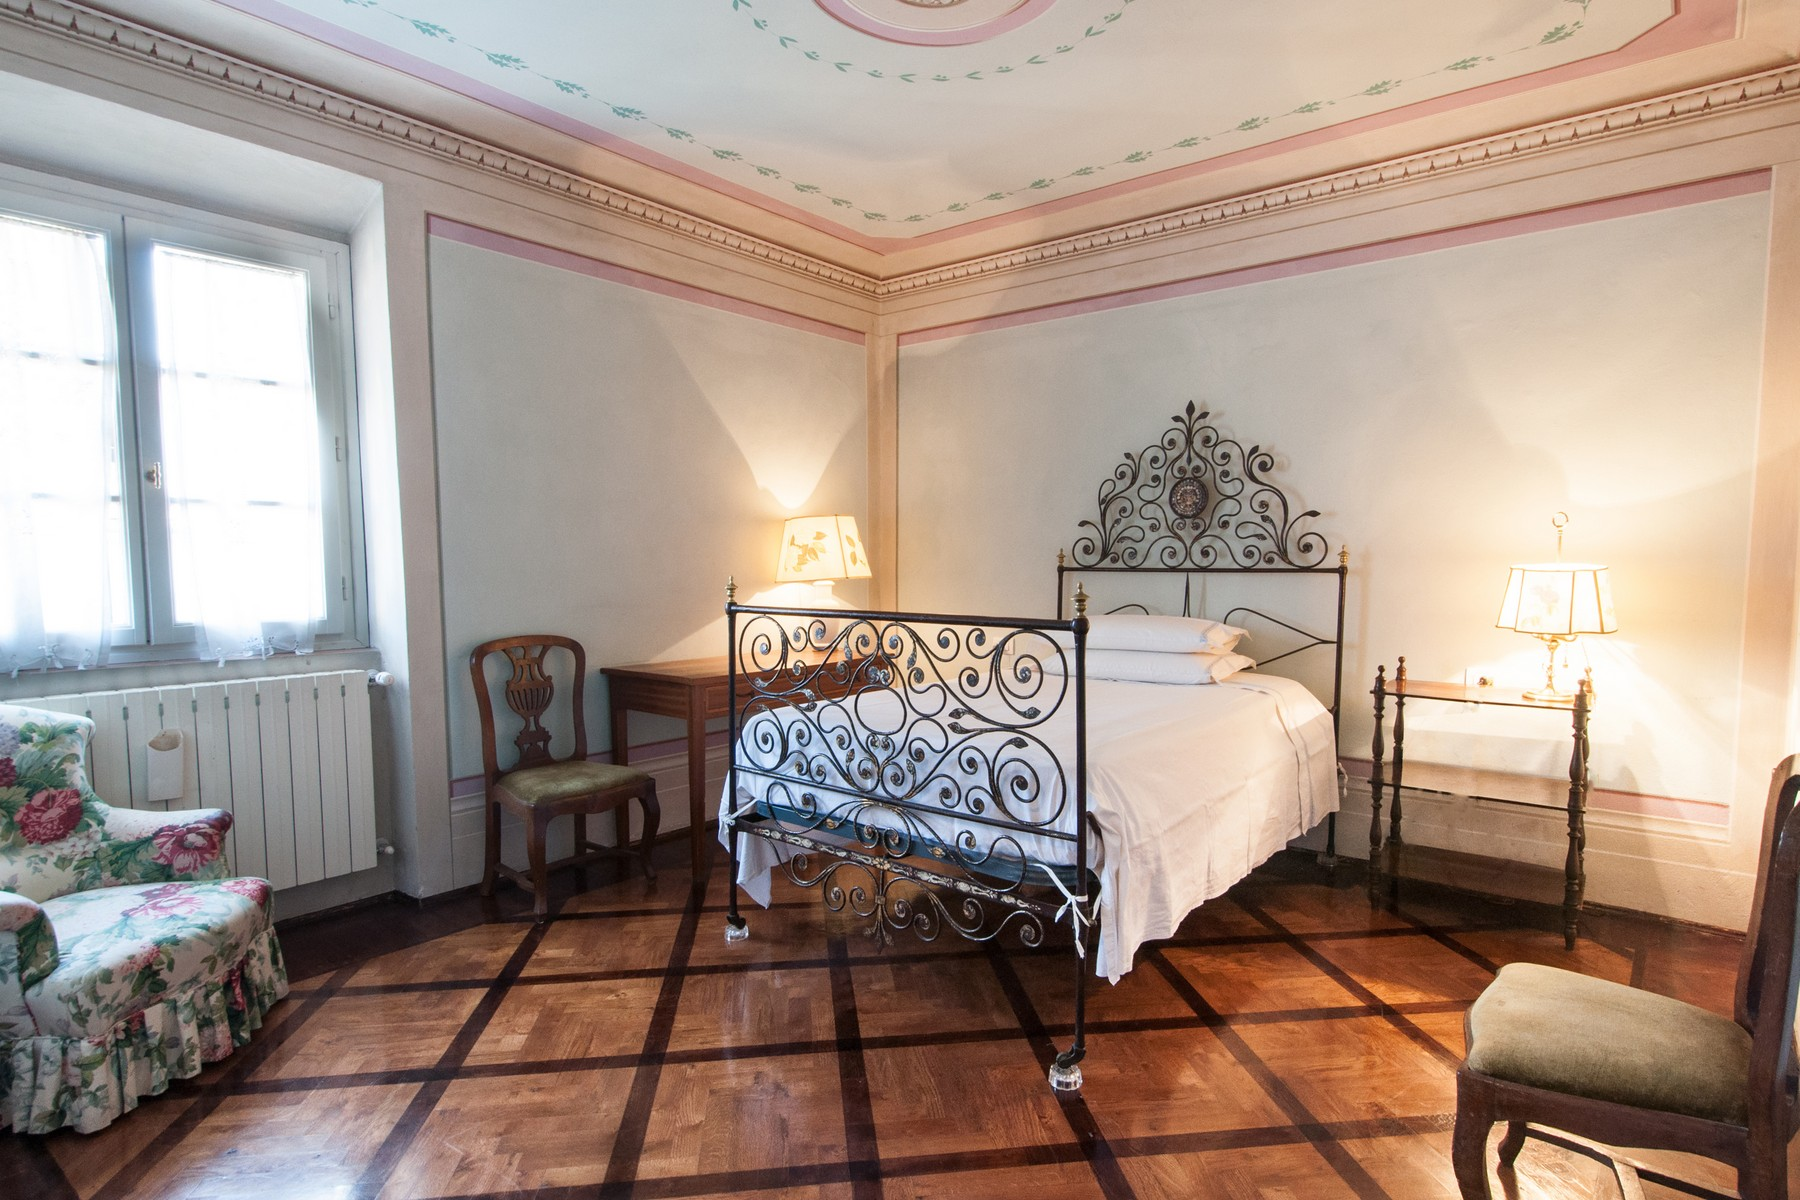 Additional photo for property listing at Charming apartment with terrace Piazza San Francesco Prato, Prato 59100 Italien